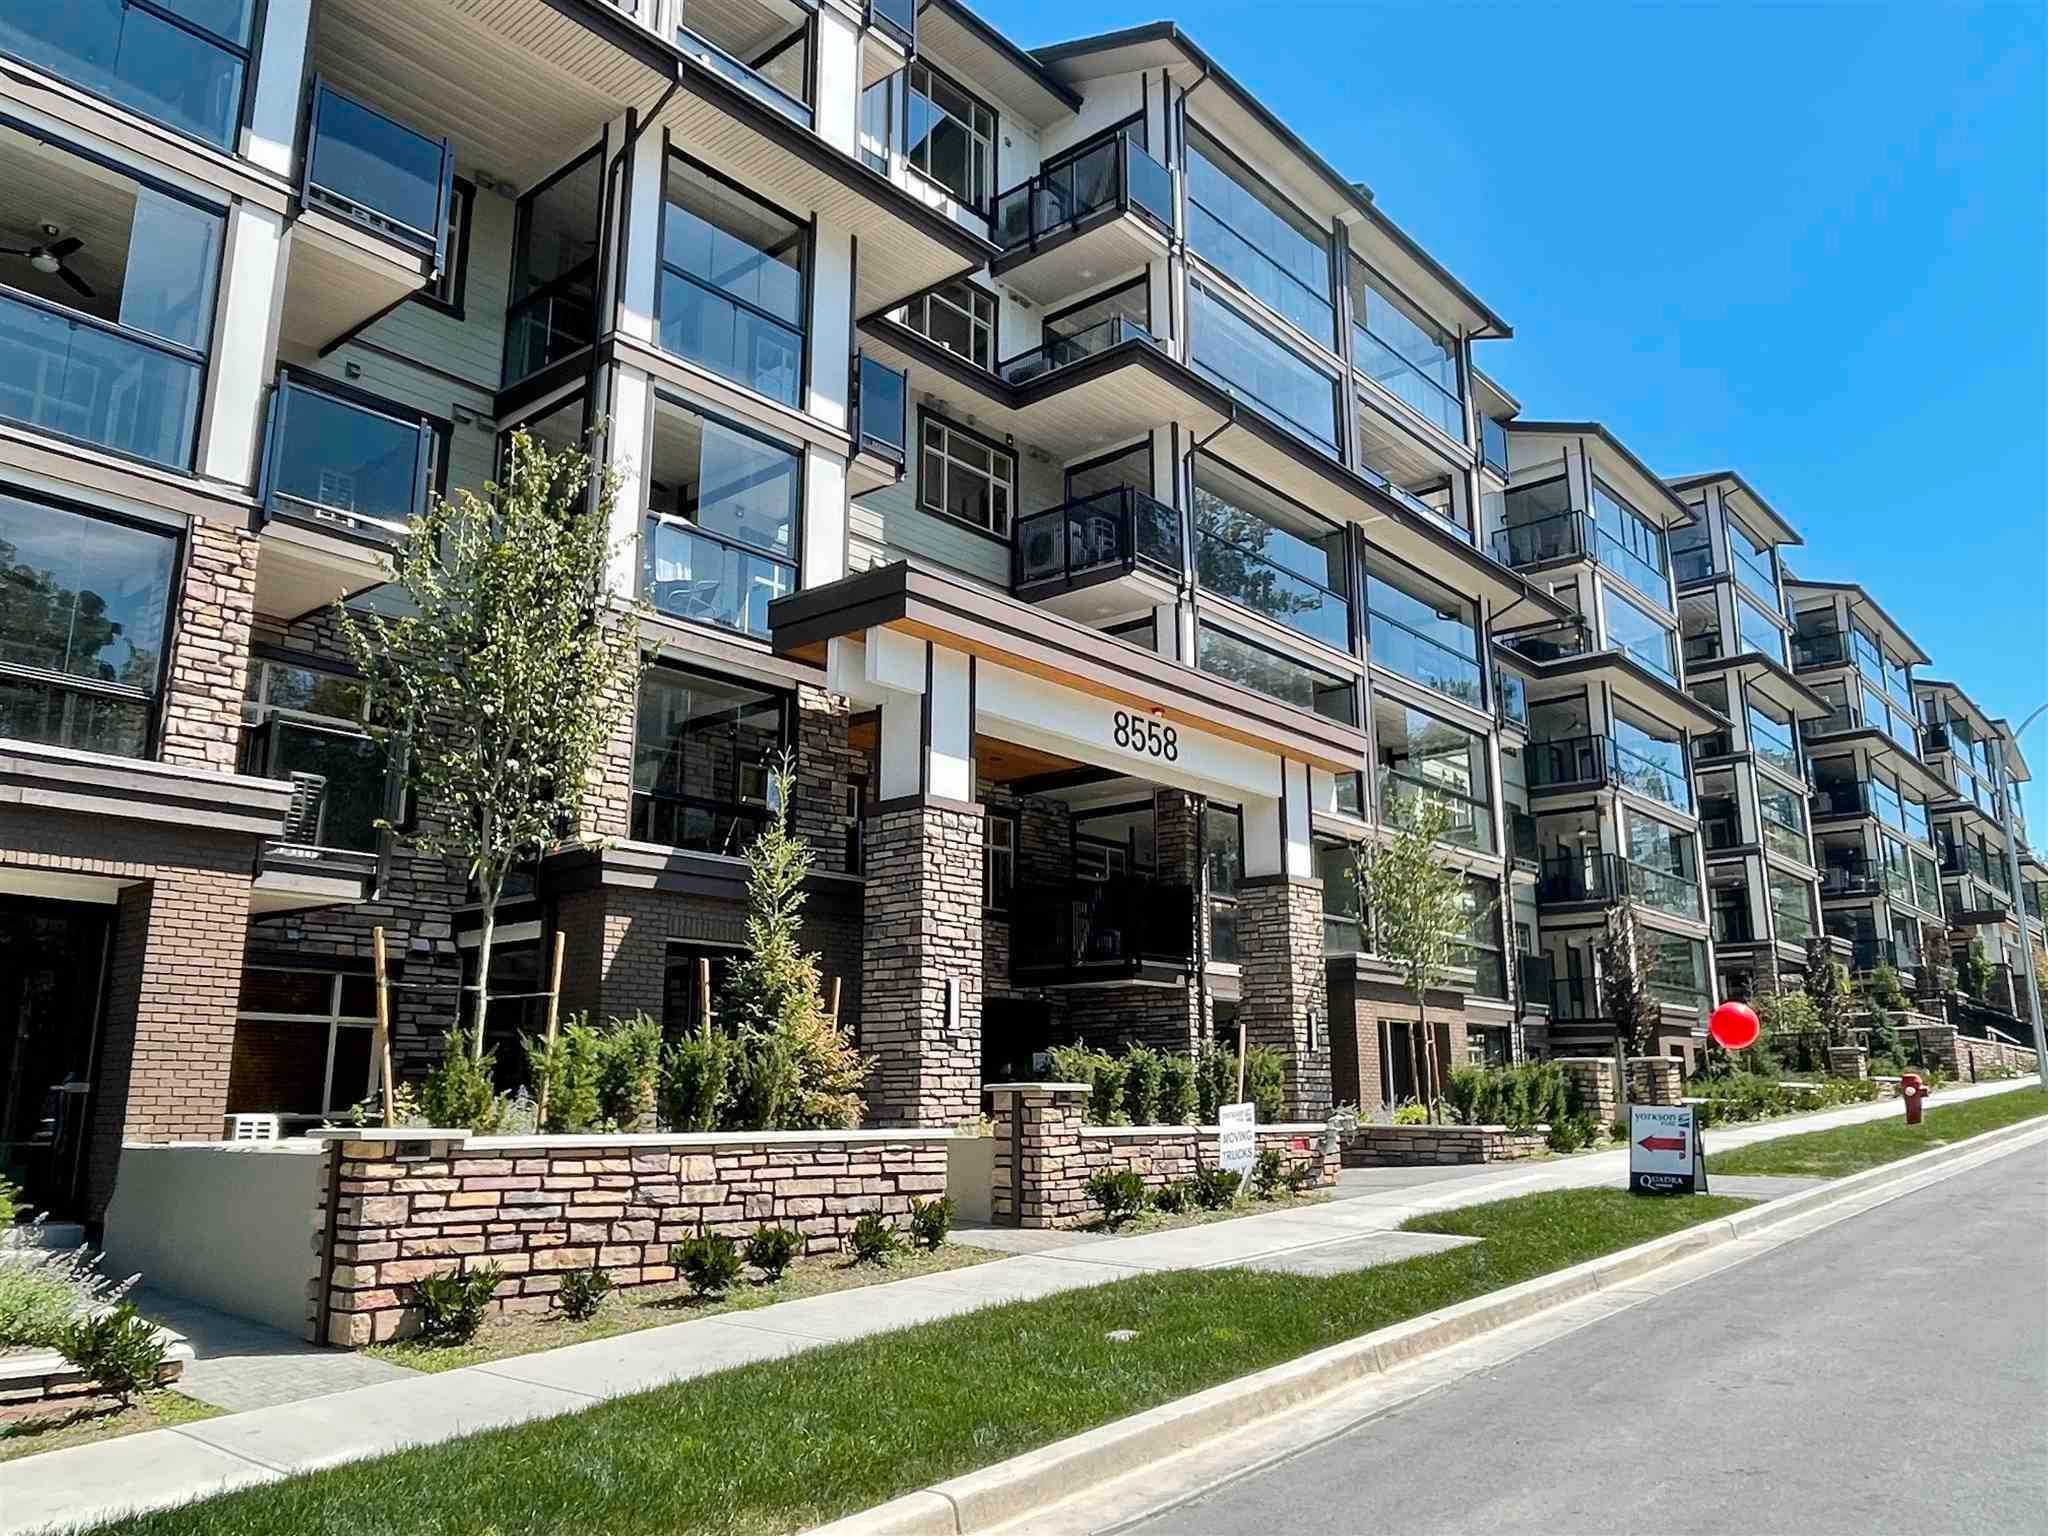 """Main Photo: 202 8558 202B Street in Langley: Willoughby Heights Condo for sale in """"YORKSON PARK"""" : MLS®# R2599224"""